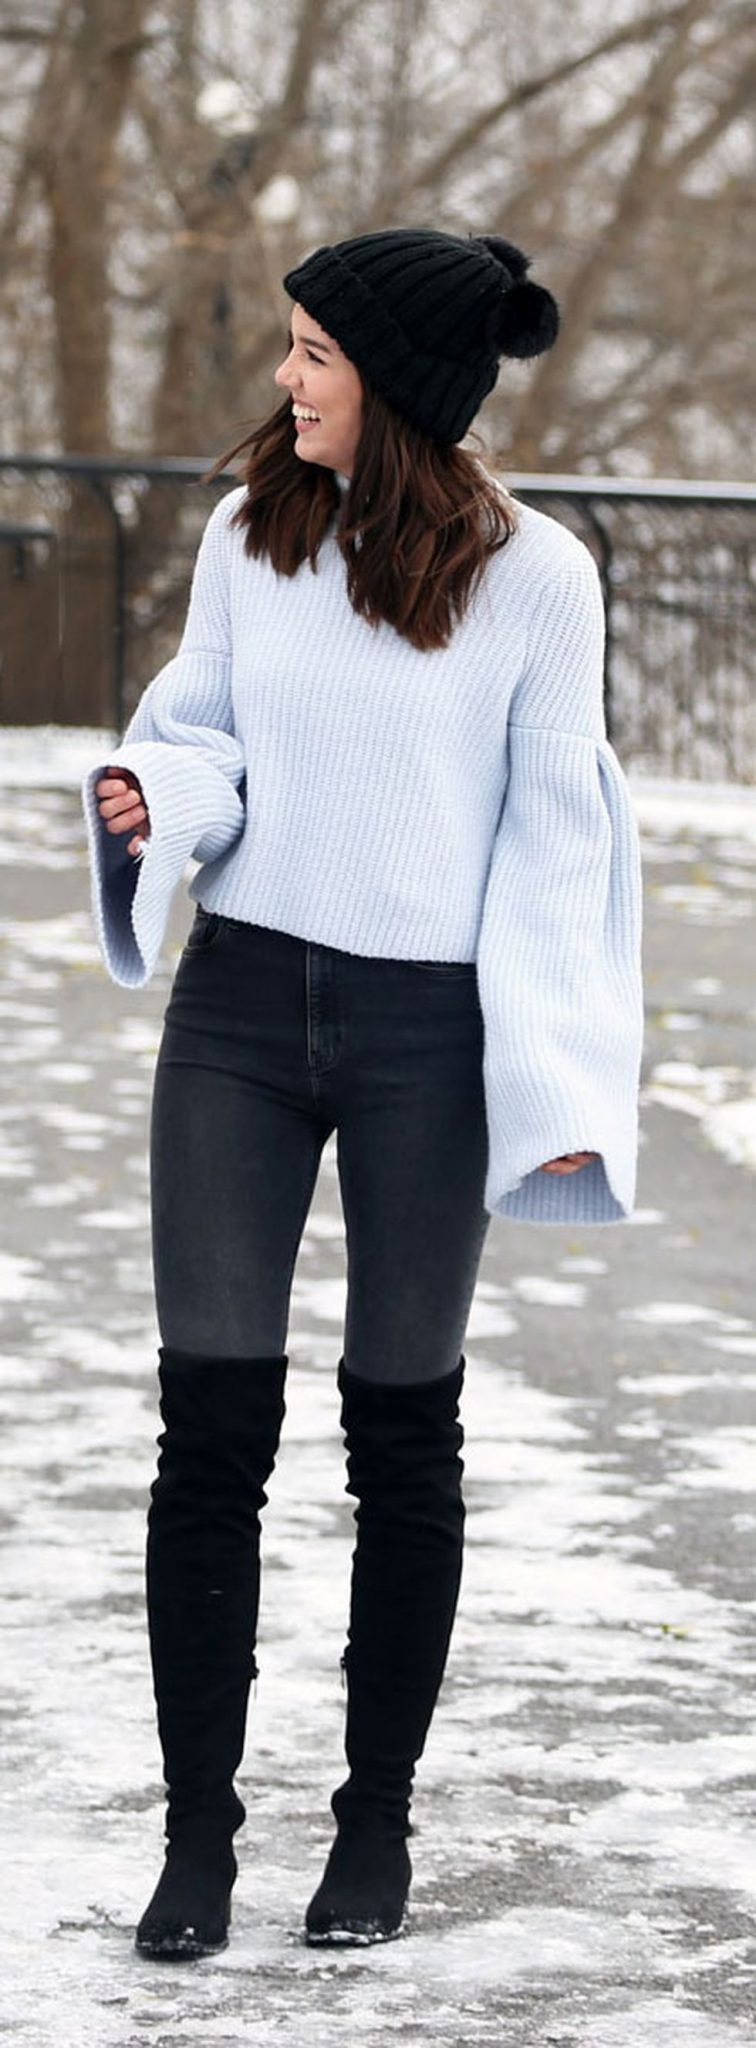 Fashionable women snow outfits for this winter 40